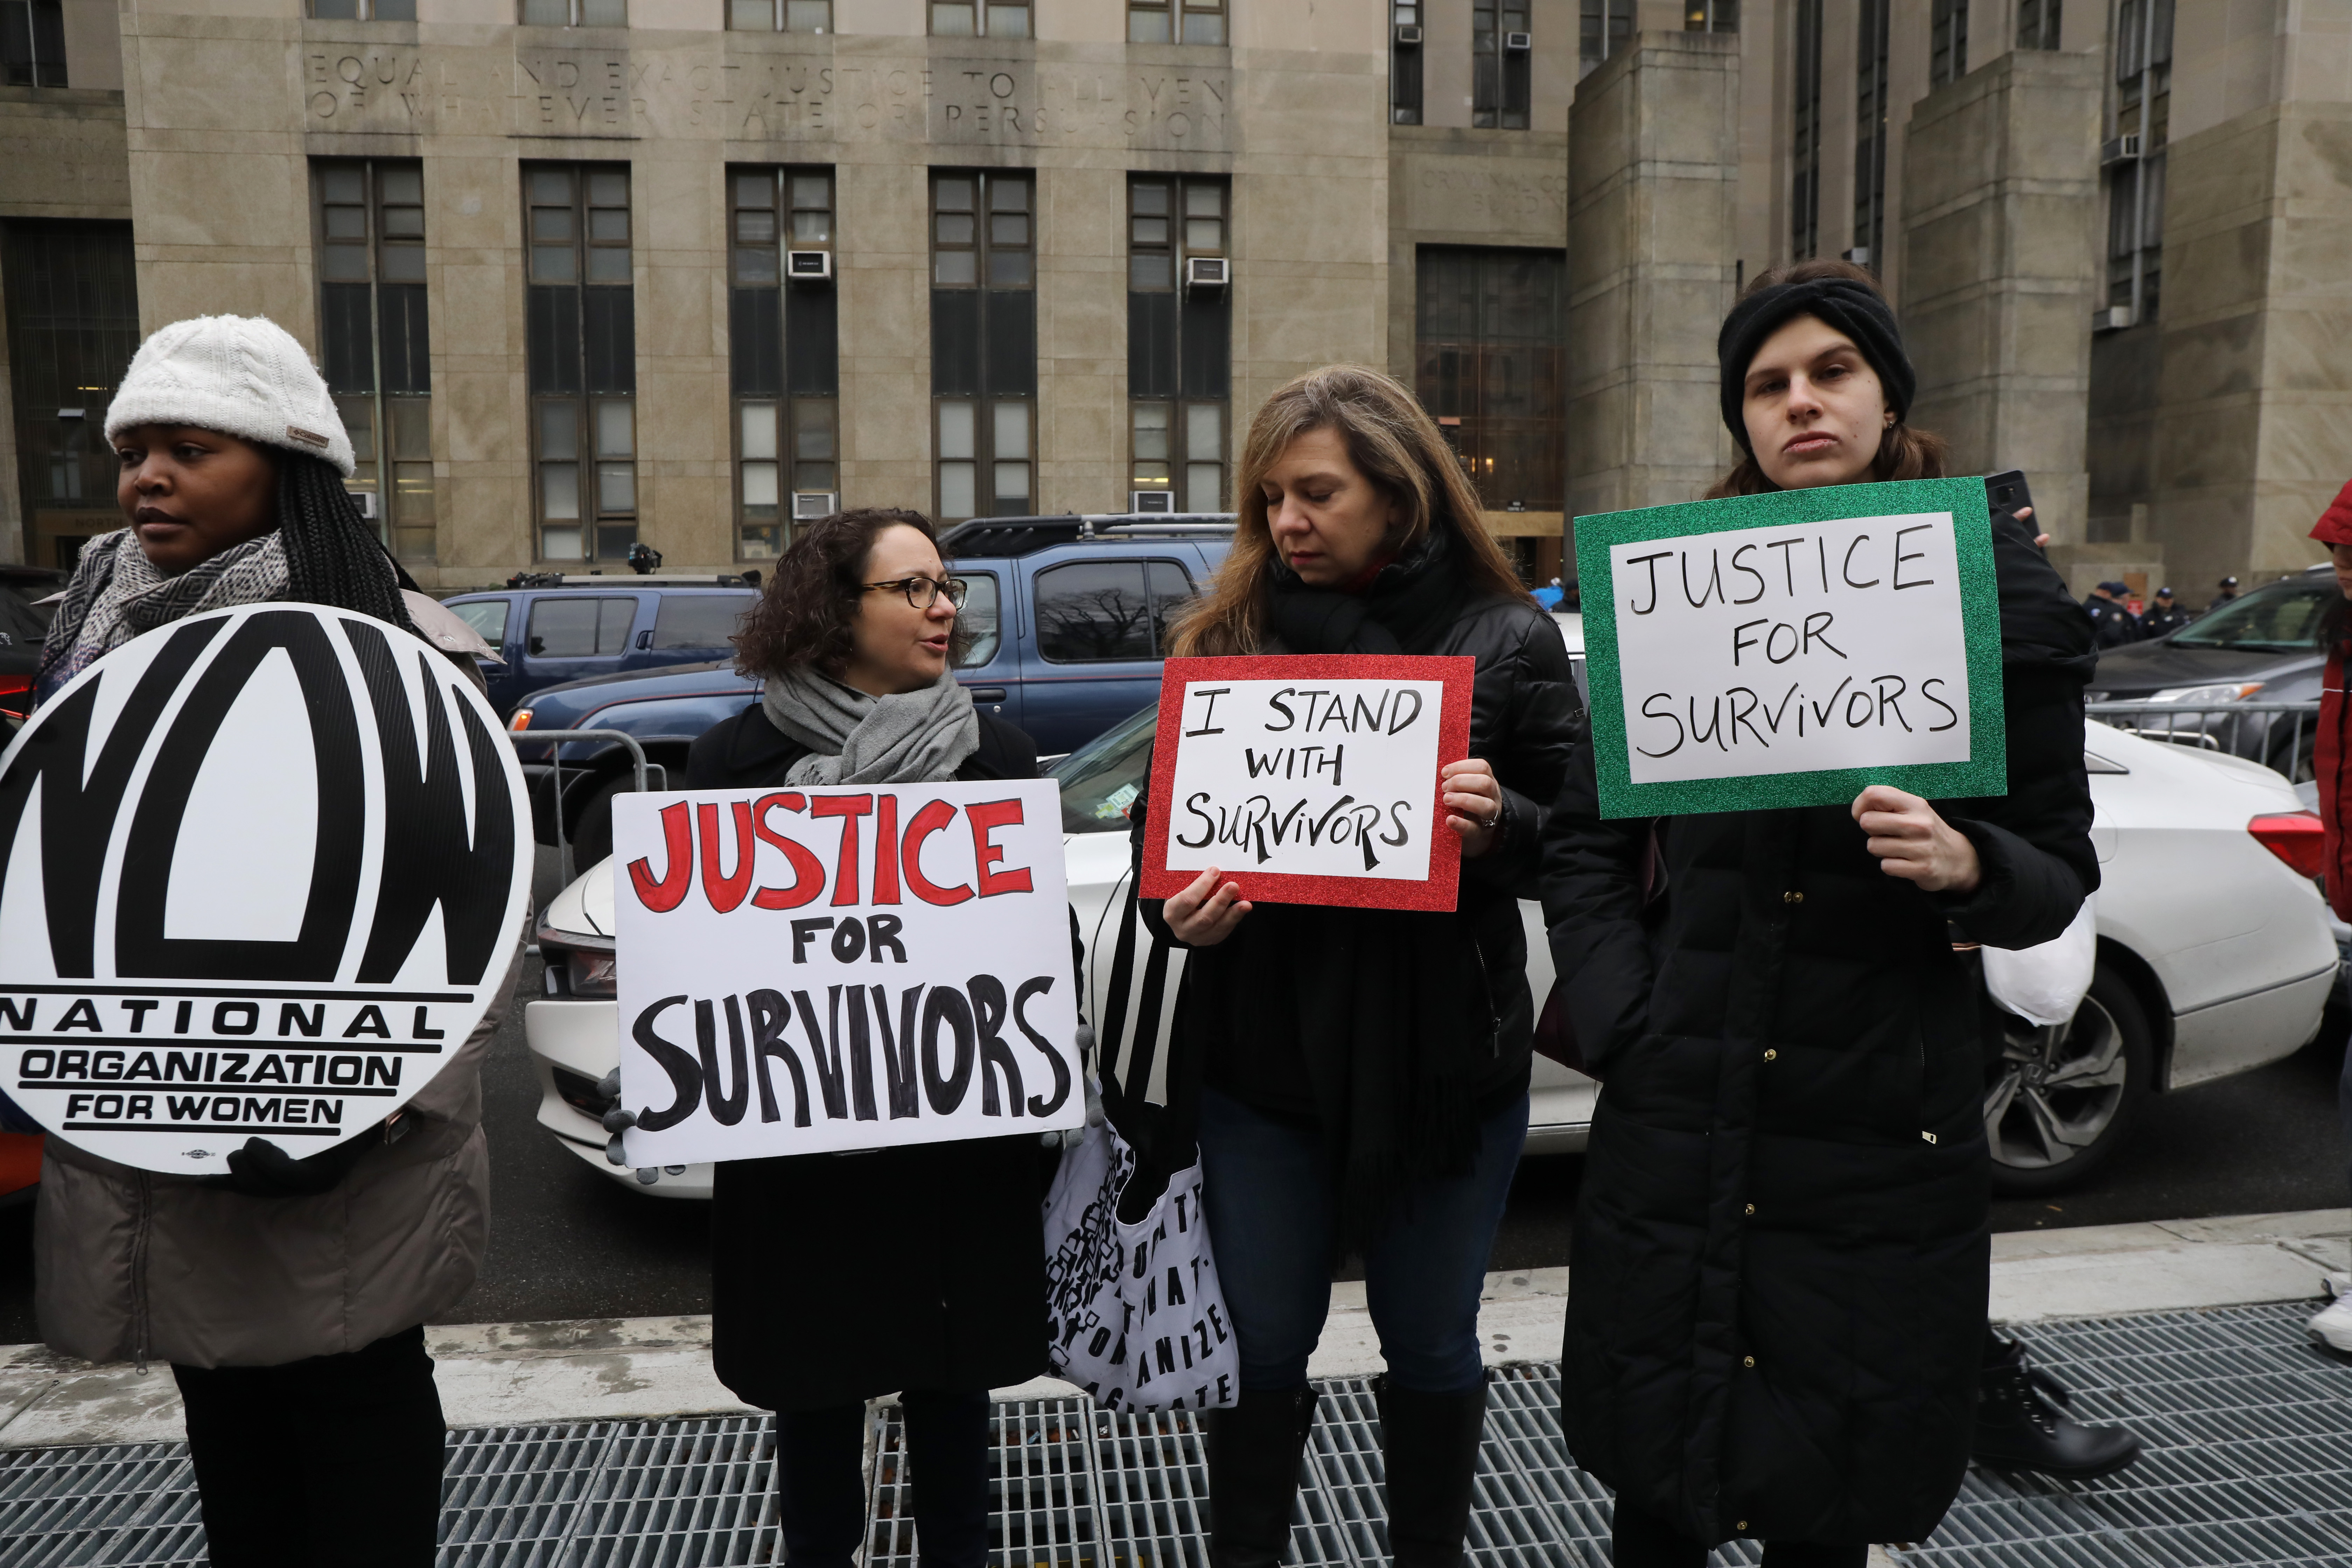 Protesters gather as Harvey Weinstein arrives at a Manhattan court house on January 06, 2020 in New York City. Weinstein, a movie producer whose alleged sexual misconduct helped spark the #MeToo movement, pleaded not-guilty on five counts of rape and sexual assault against two unnamed women and faces a possible life sentence in prison. (Photo by Spencer Platt/Getty Images)